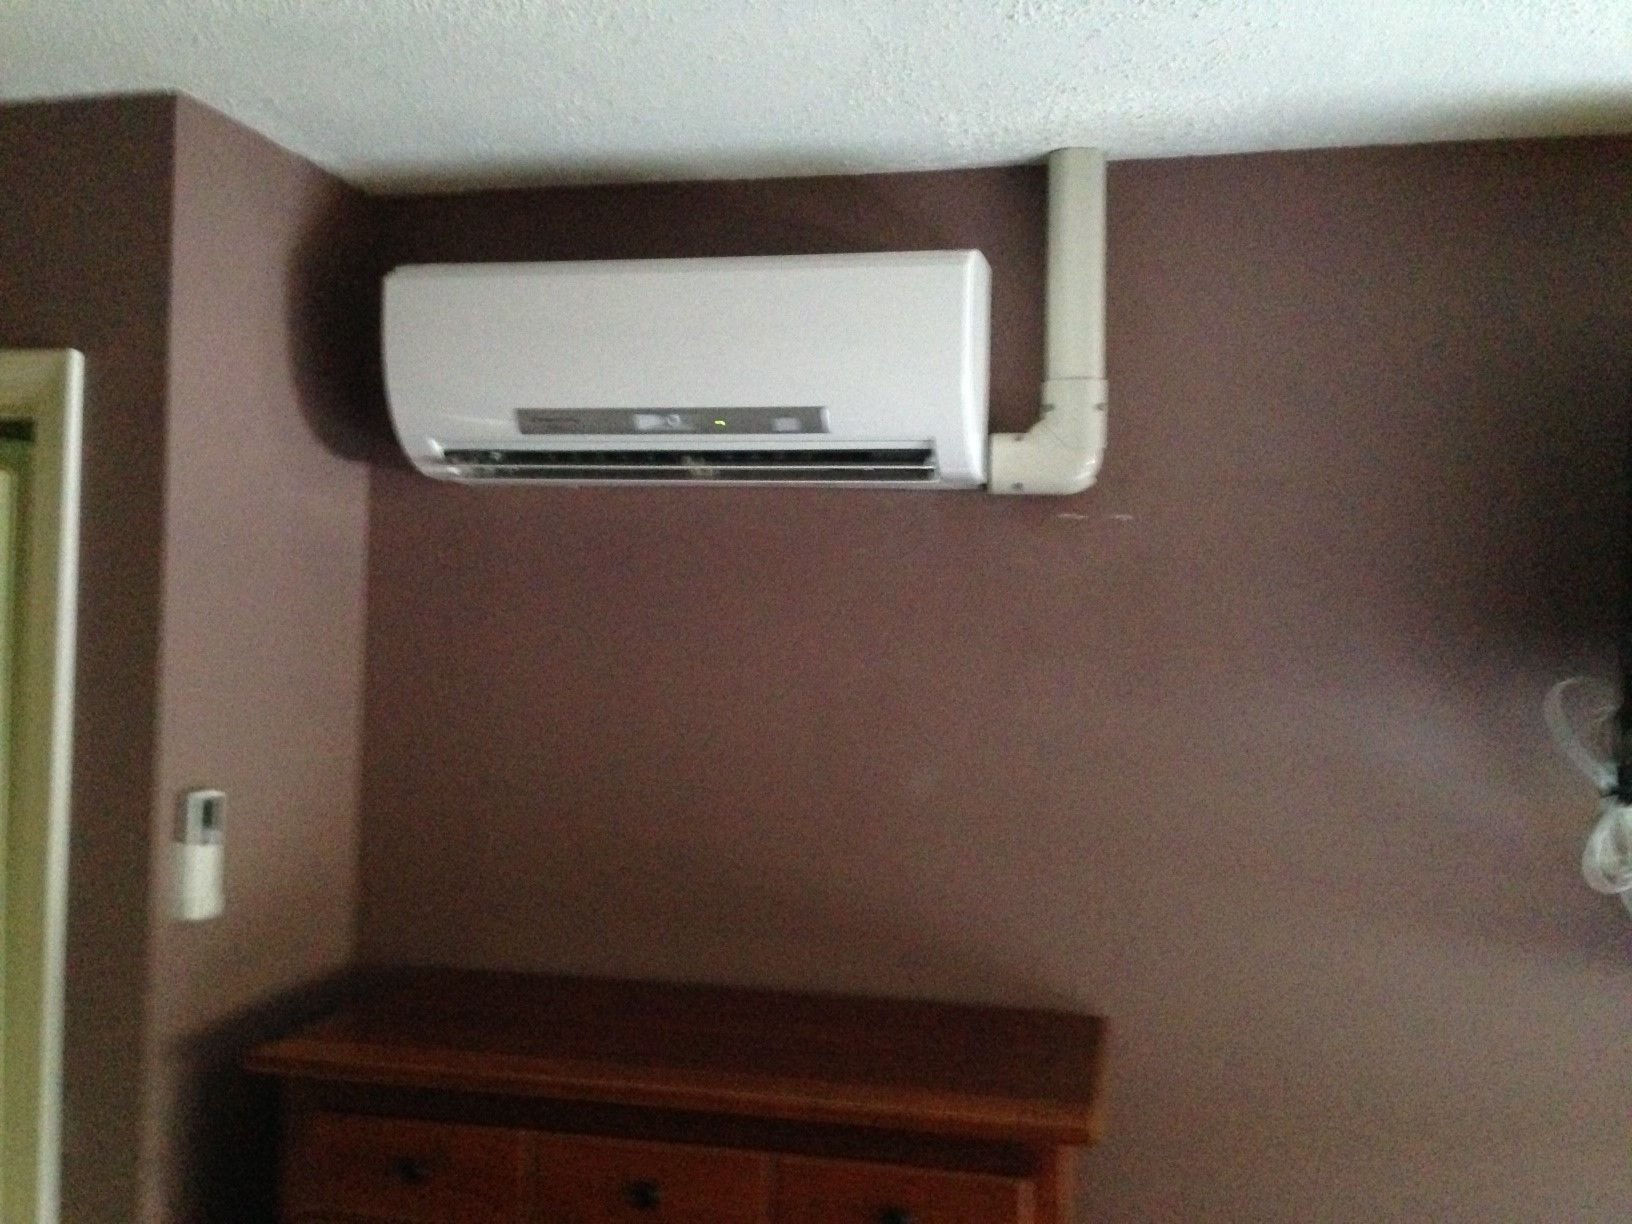 Mitsubishi Ductless Wall Mount Ductless Heat Pump And Heat Pump On Pinterest